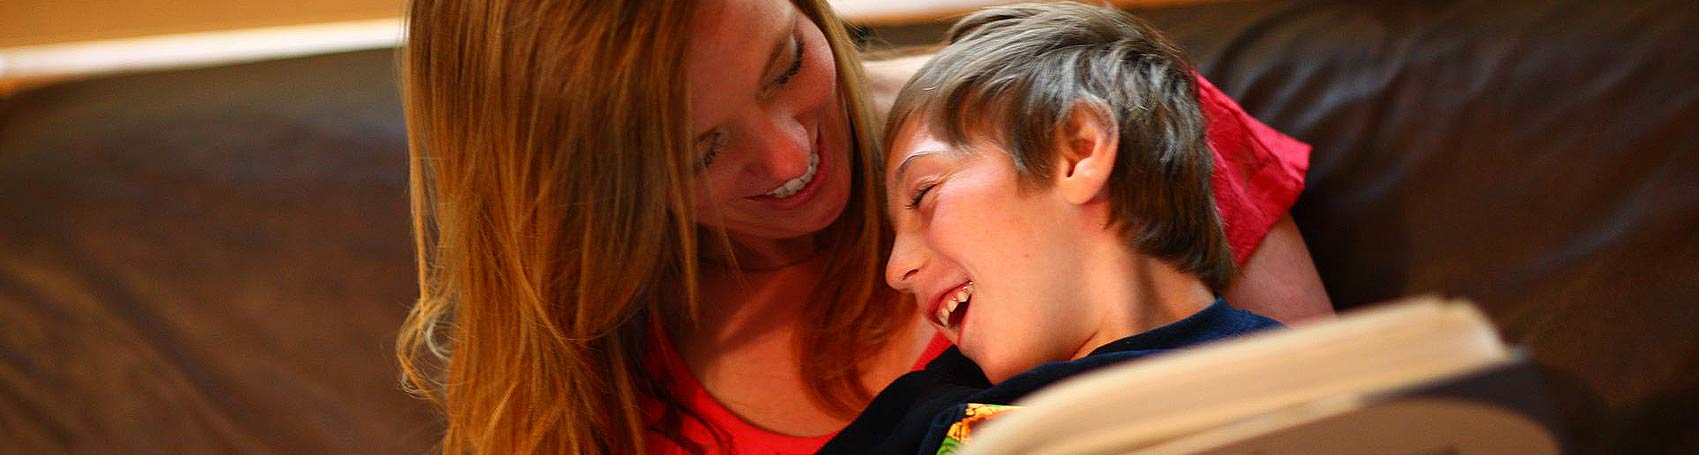 Nanny or babysitting service in Ibiza. VIP services. Consulting Services Ibiza